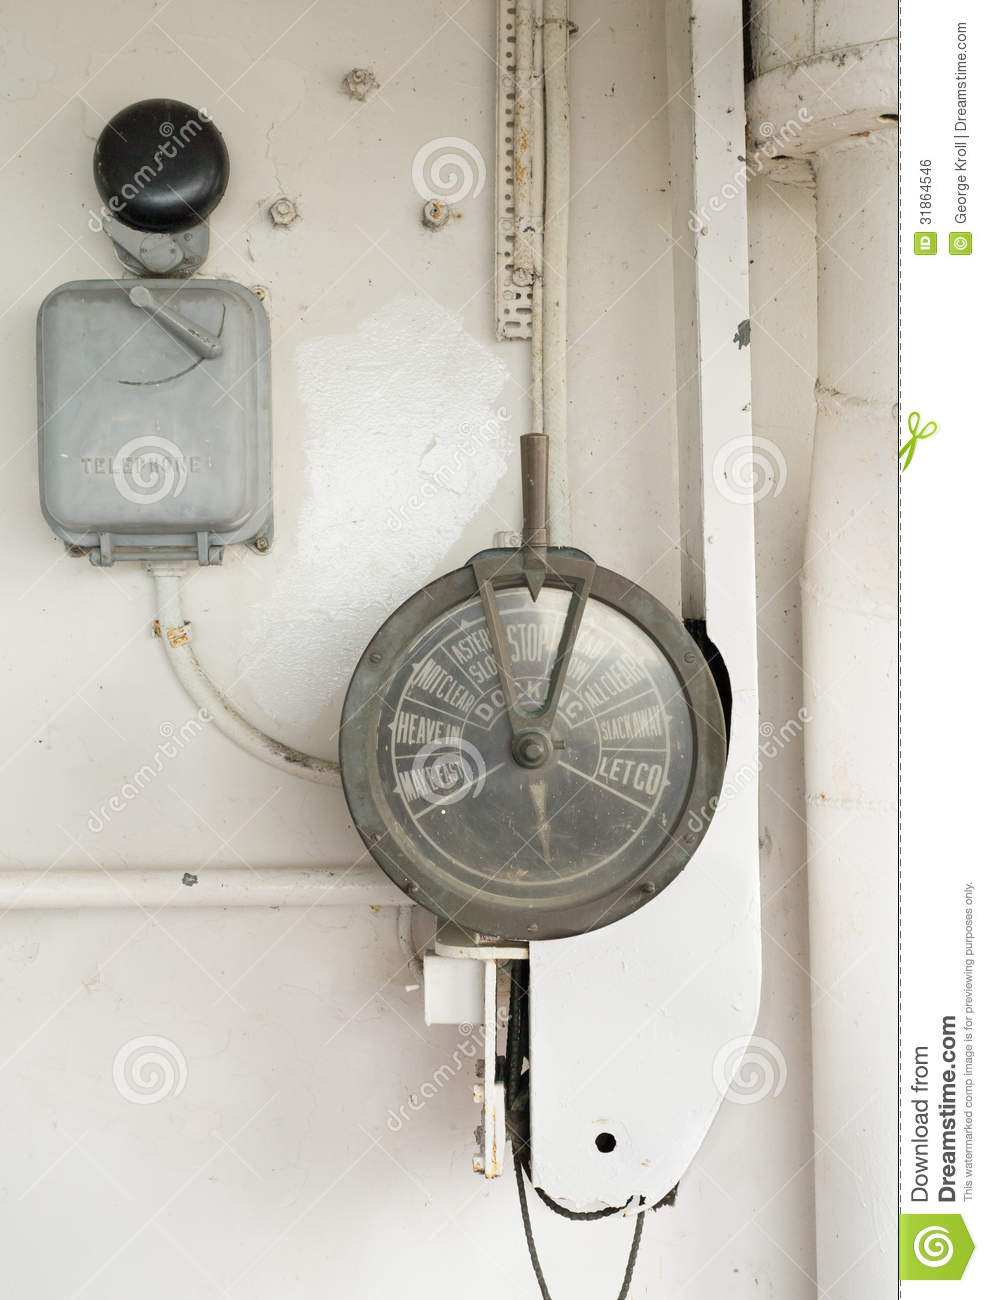 Engine Room Telegraph: Outdoor Engine Room Telegraph Royalty Free Stock Image